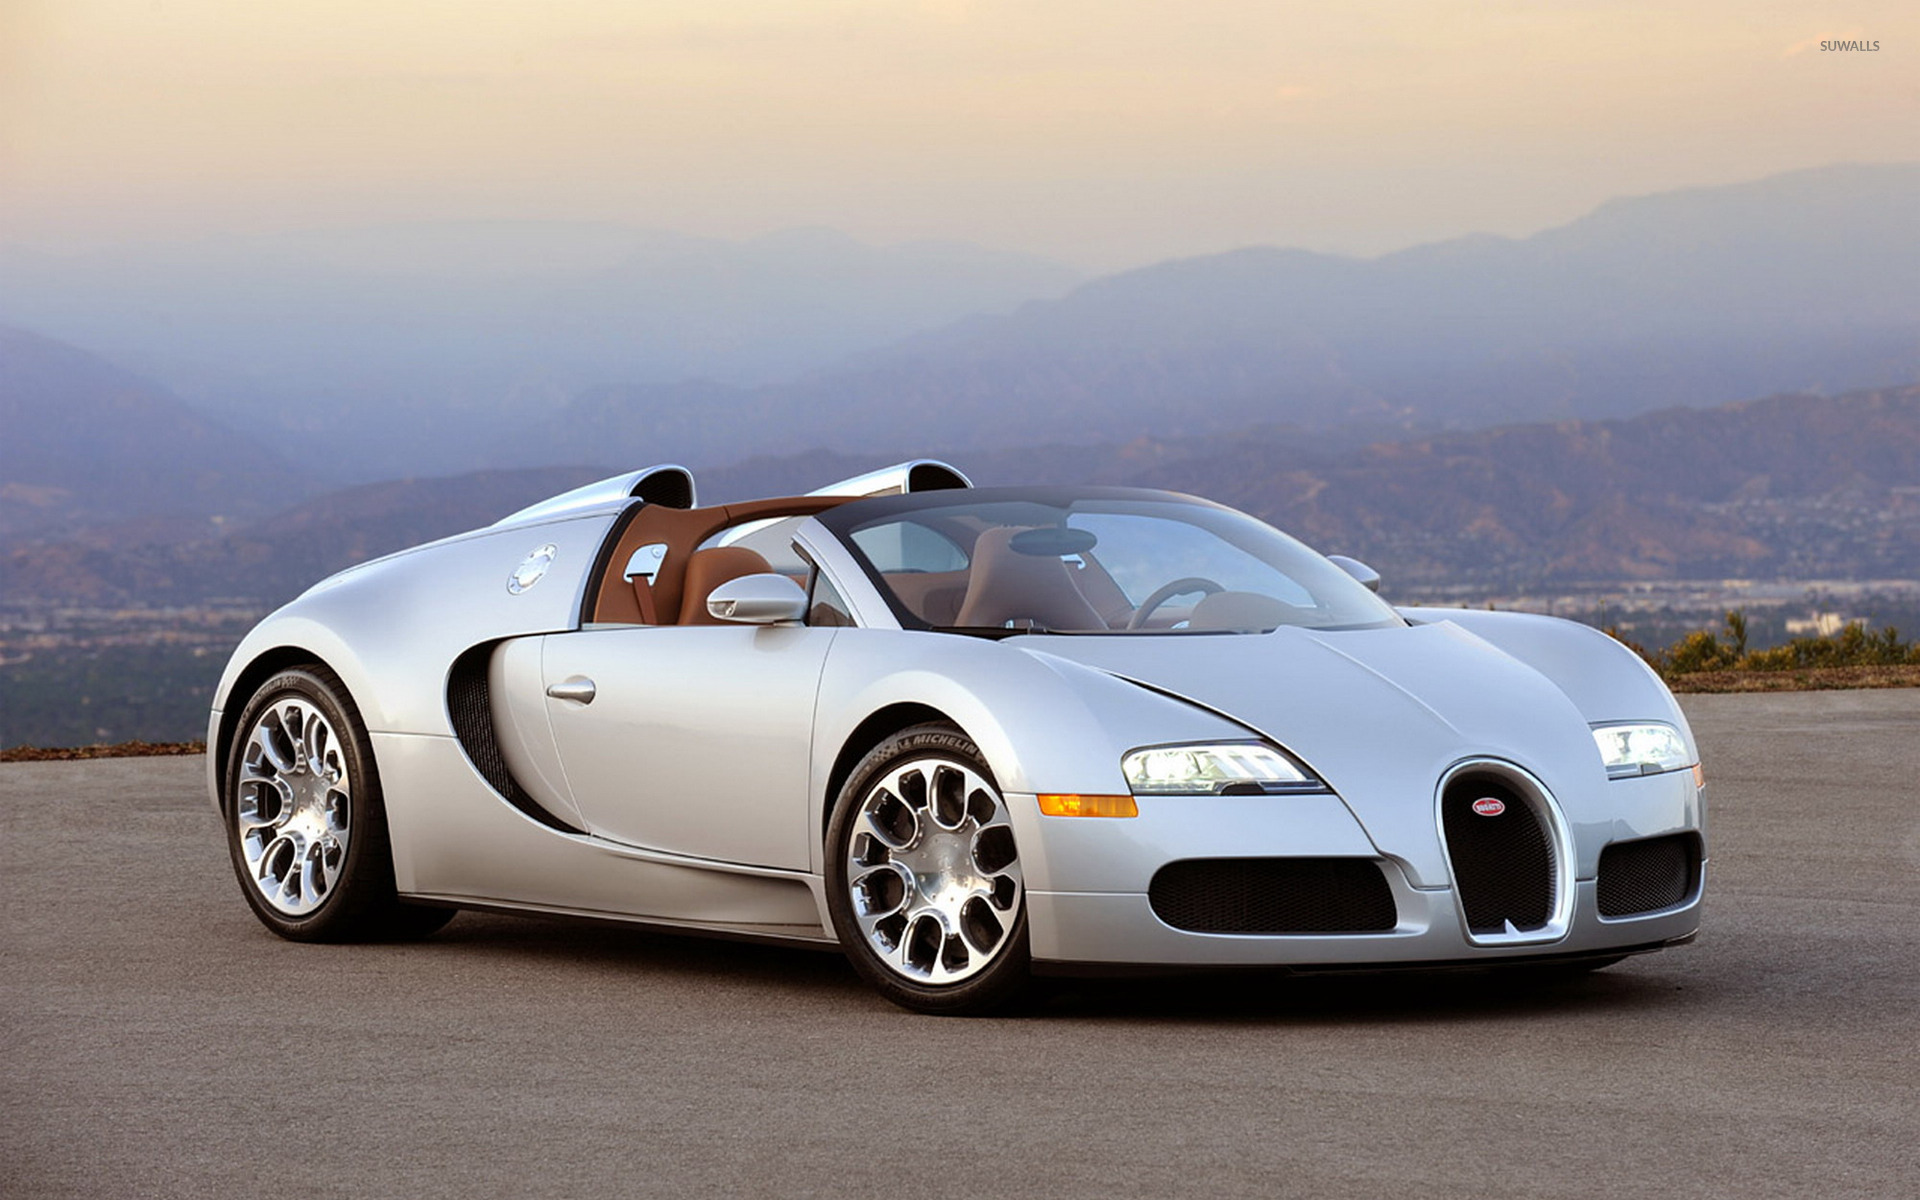 Bugatti Veyron EB 164 [4] wallpaper   Car wallpapers   16939 1920x1200